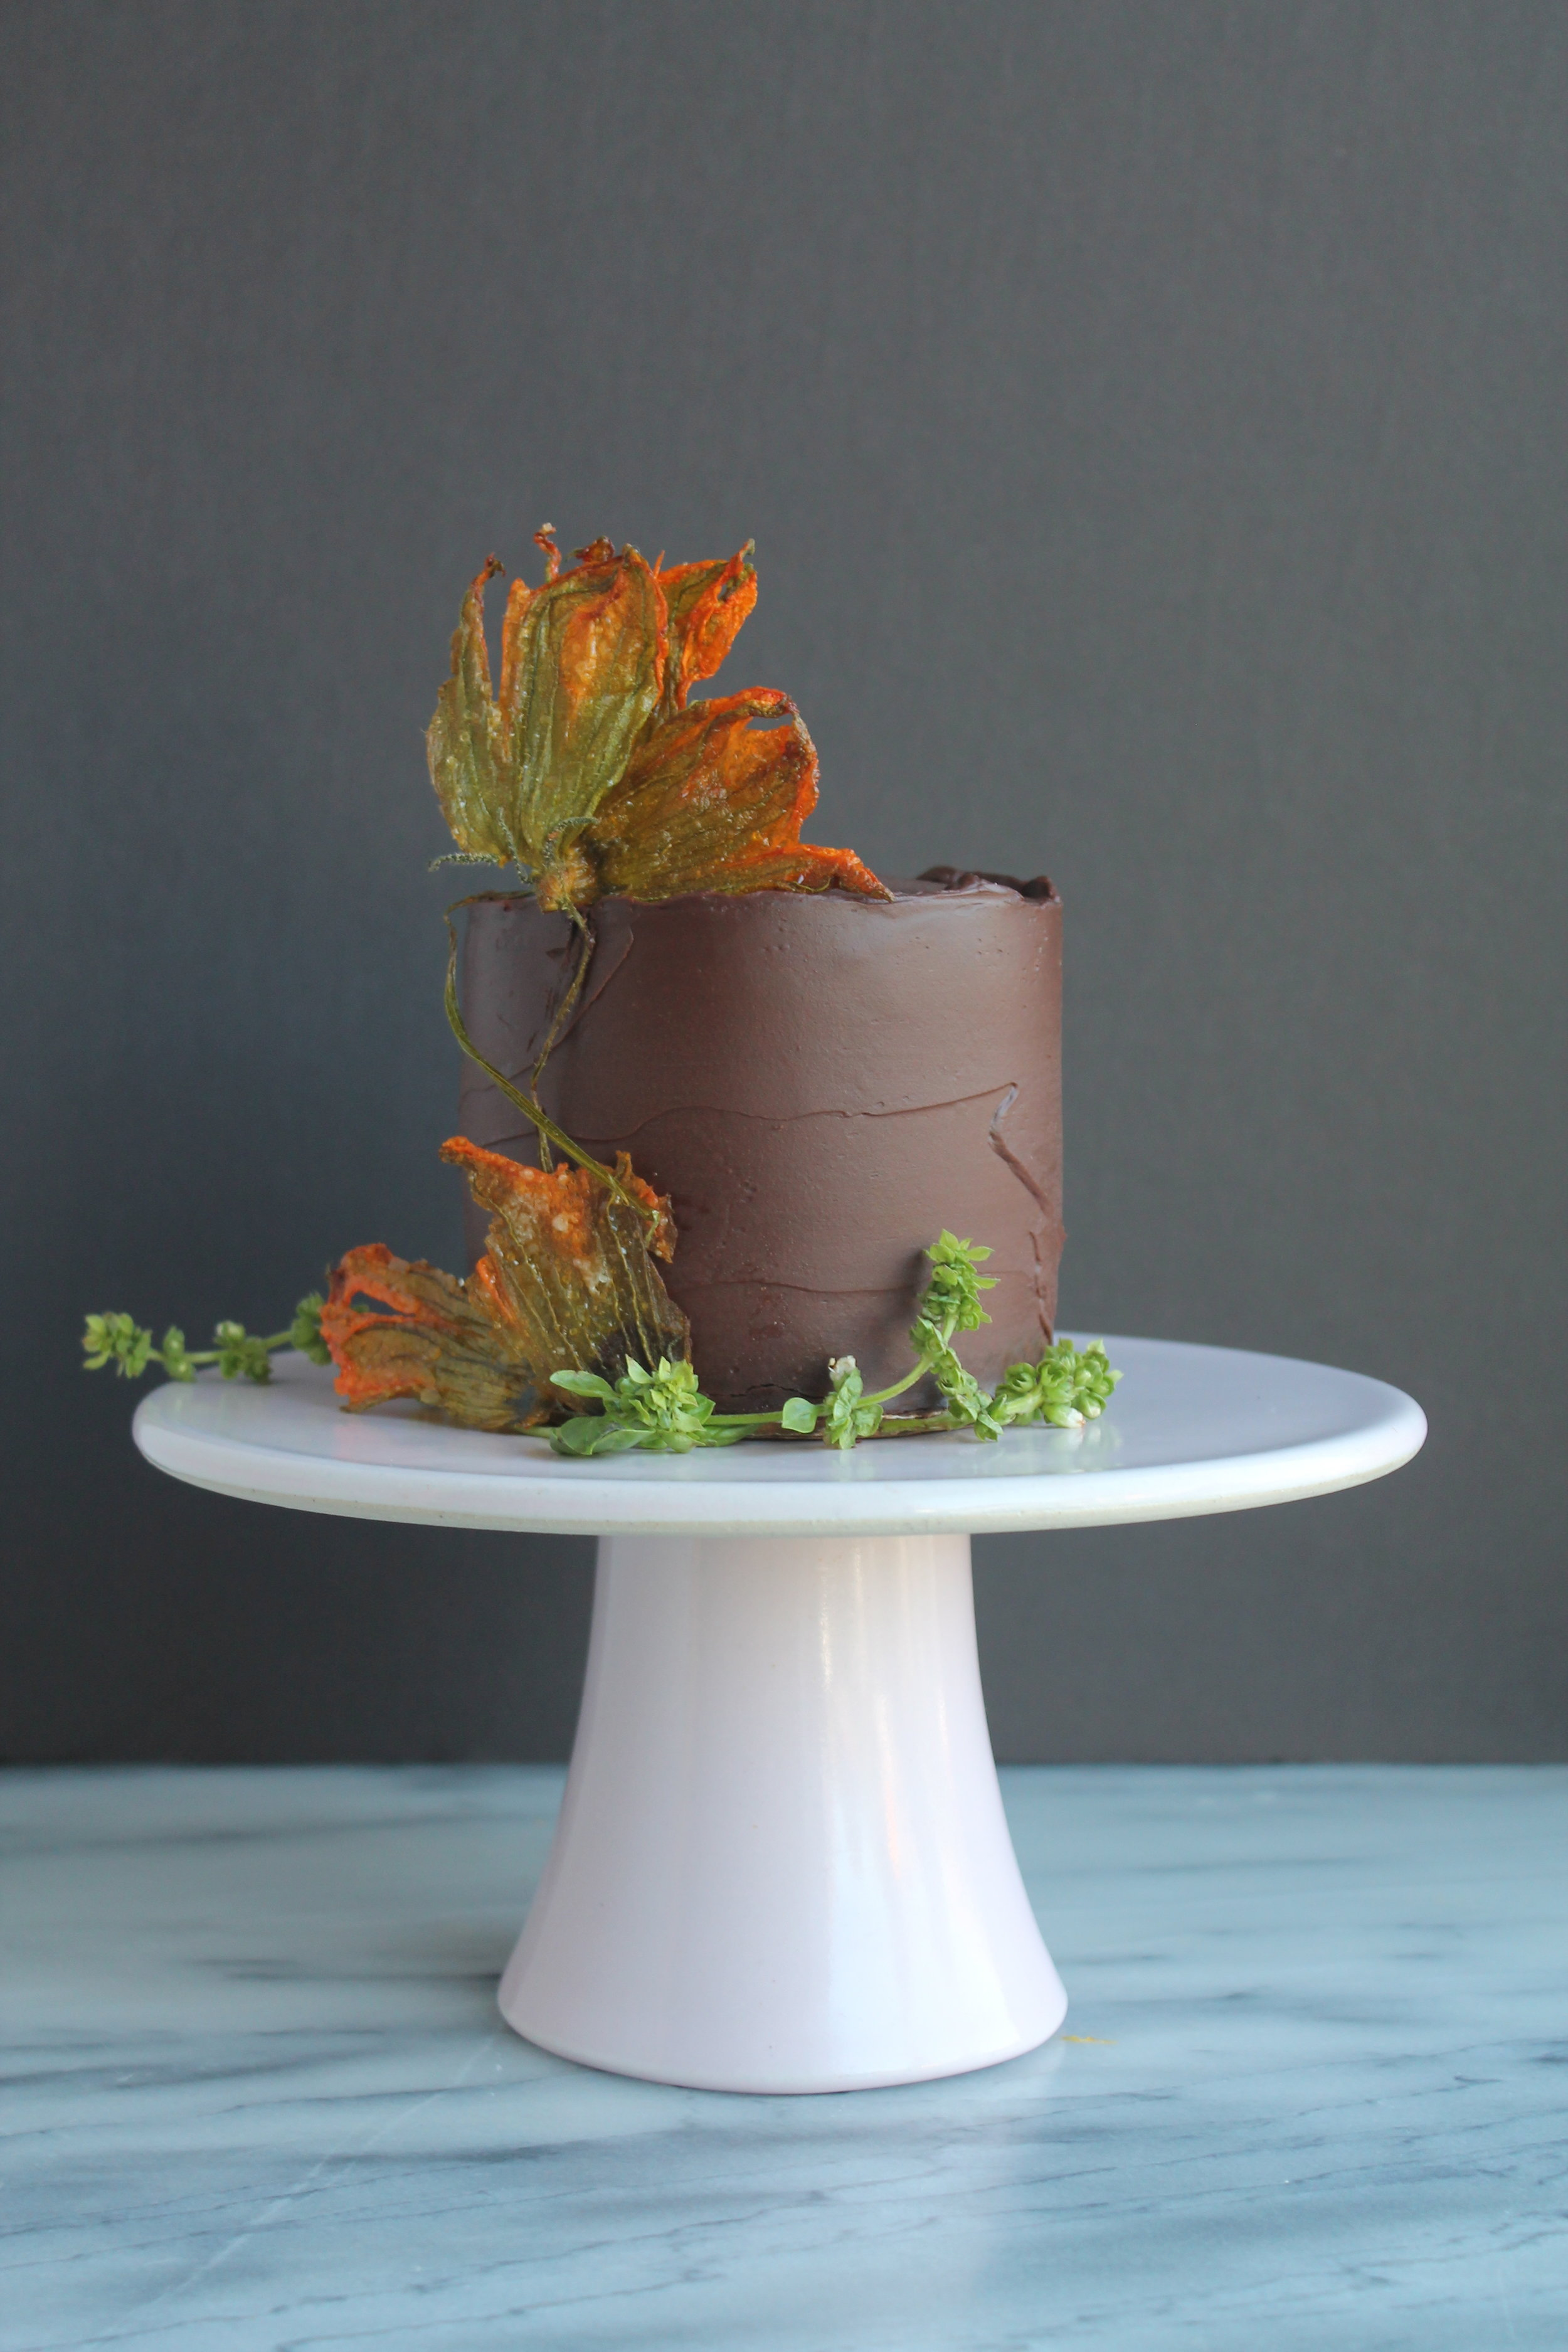 Recipes for Chocolate Zucchini Cake with Candied Squash Blossoms and Chocolate Basil Ganache